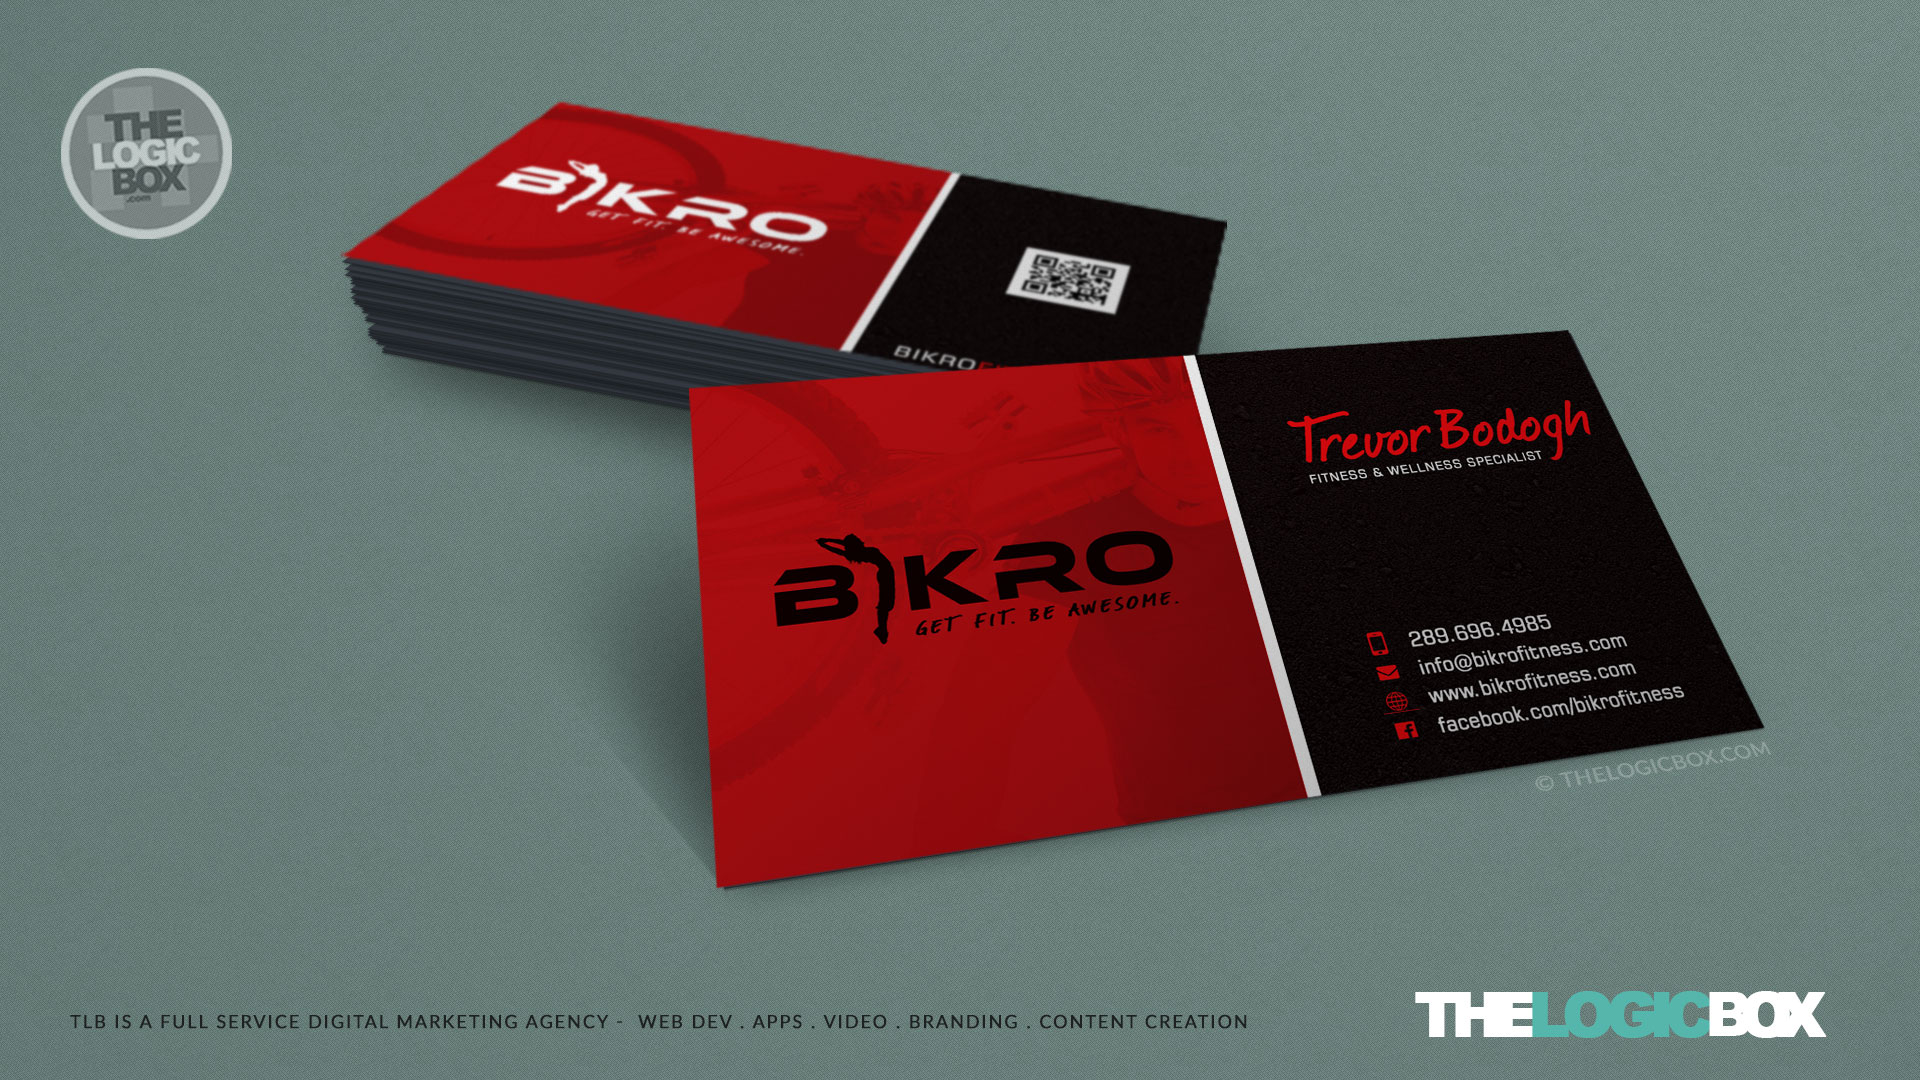 Business-Card-the-logic-box-agency-2-bikro-fitness